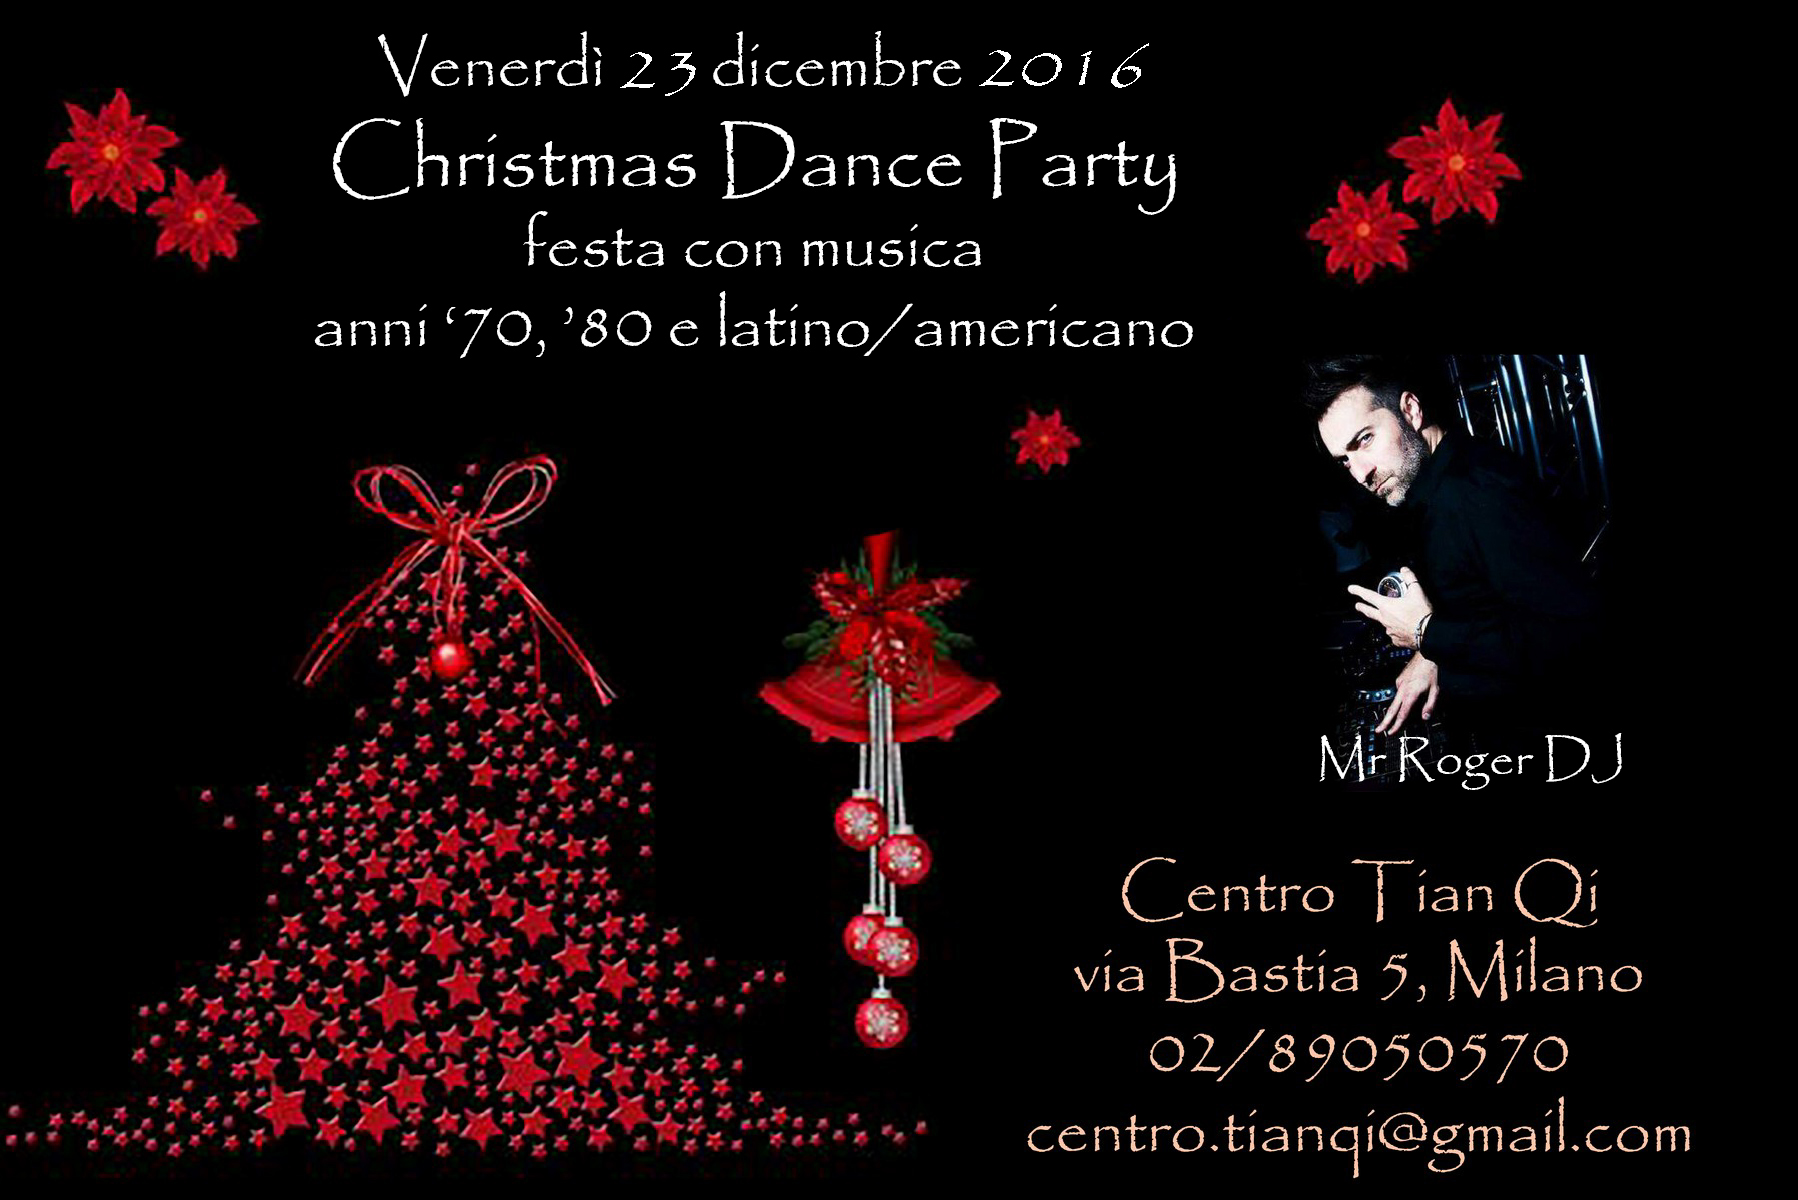 23/12/2016 christmas dance party